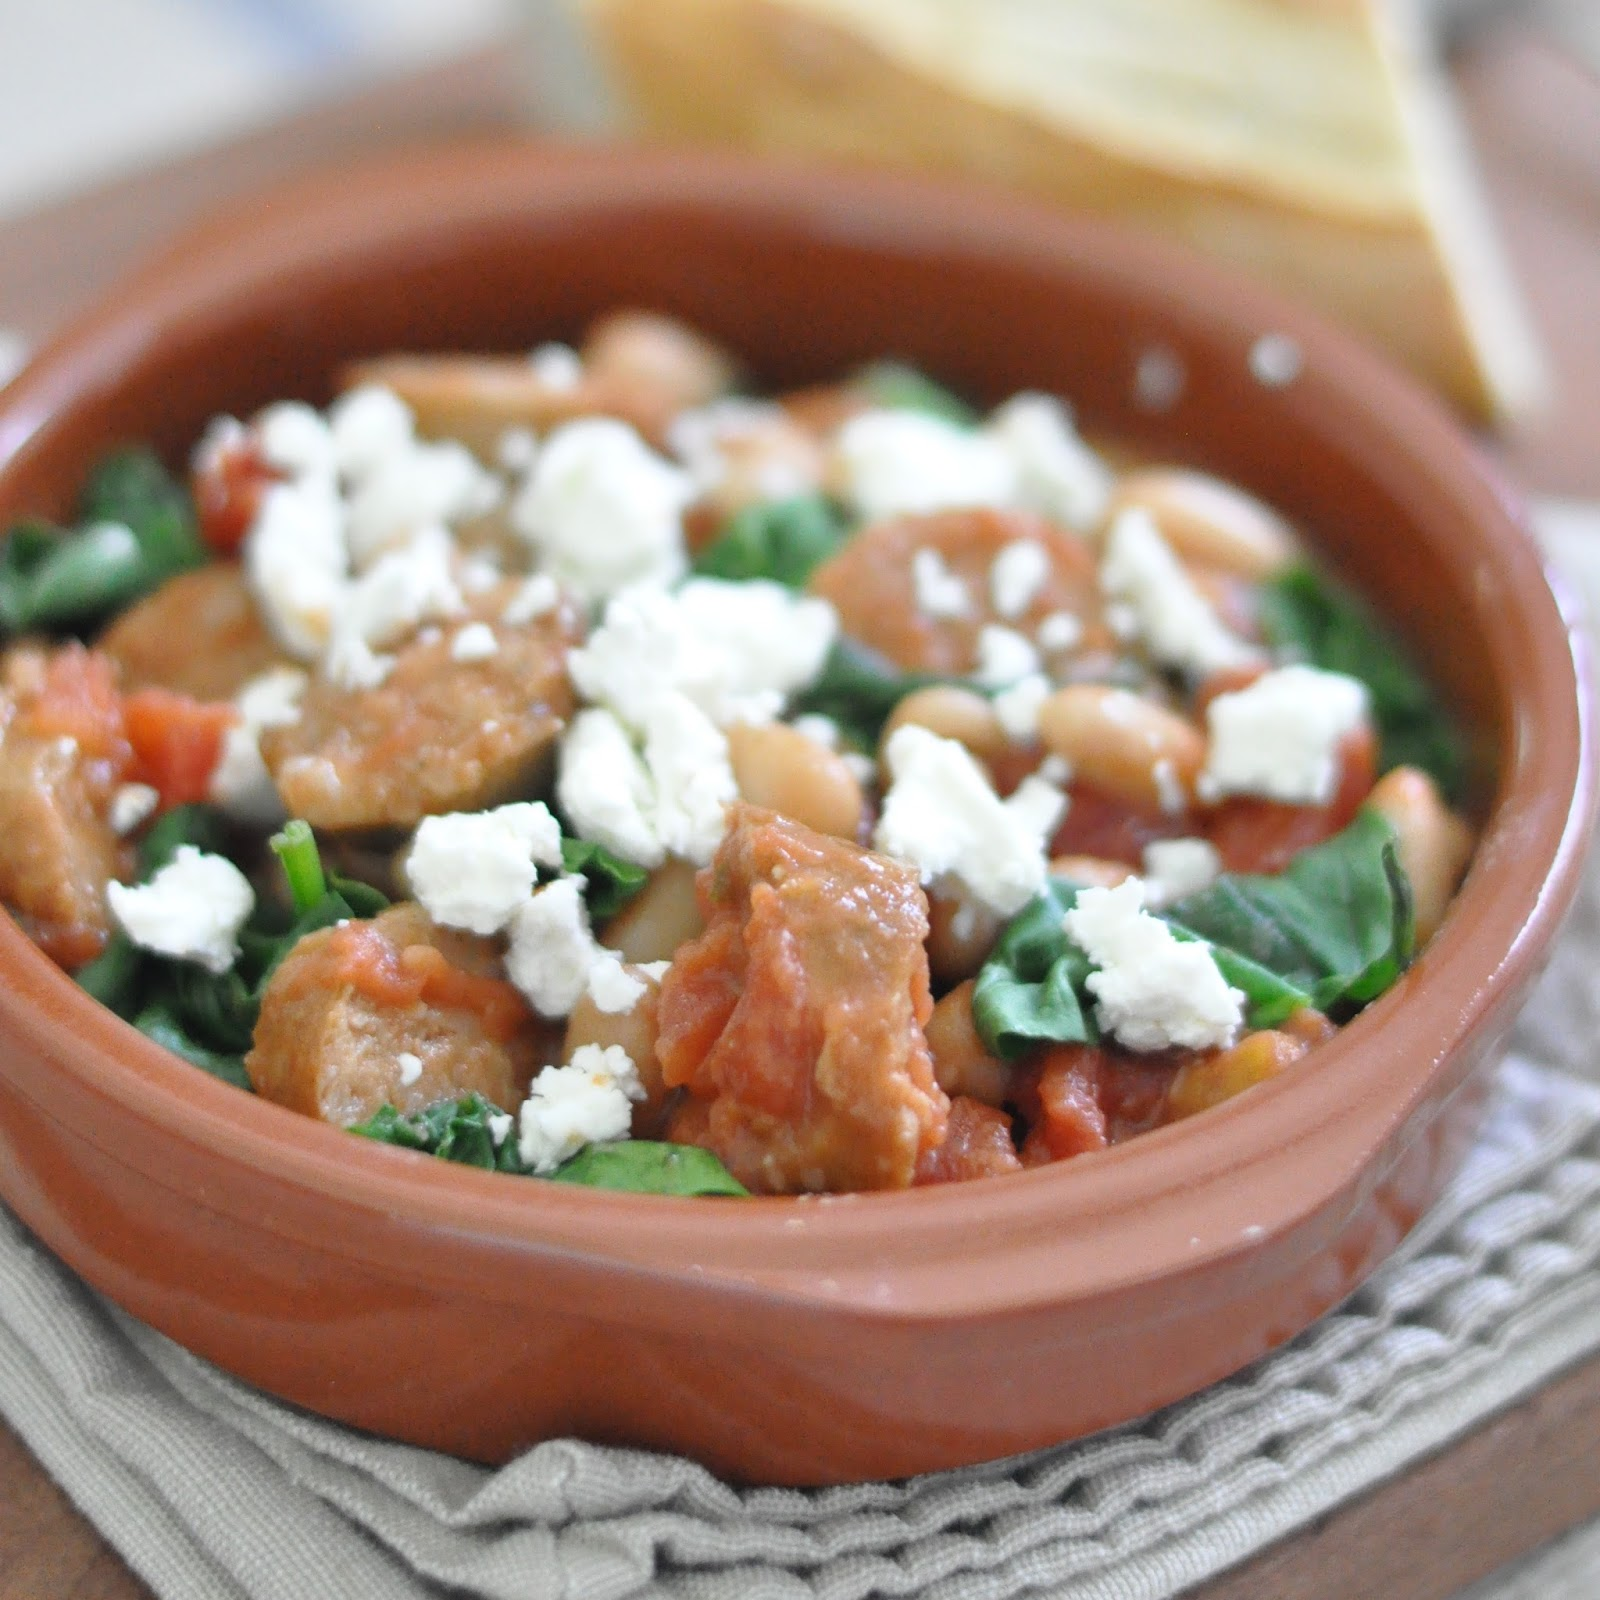 Sausage, Spinach & White Beans